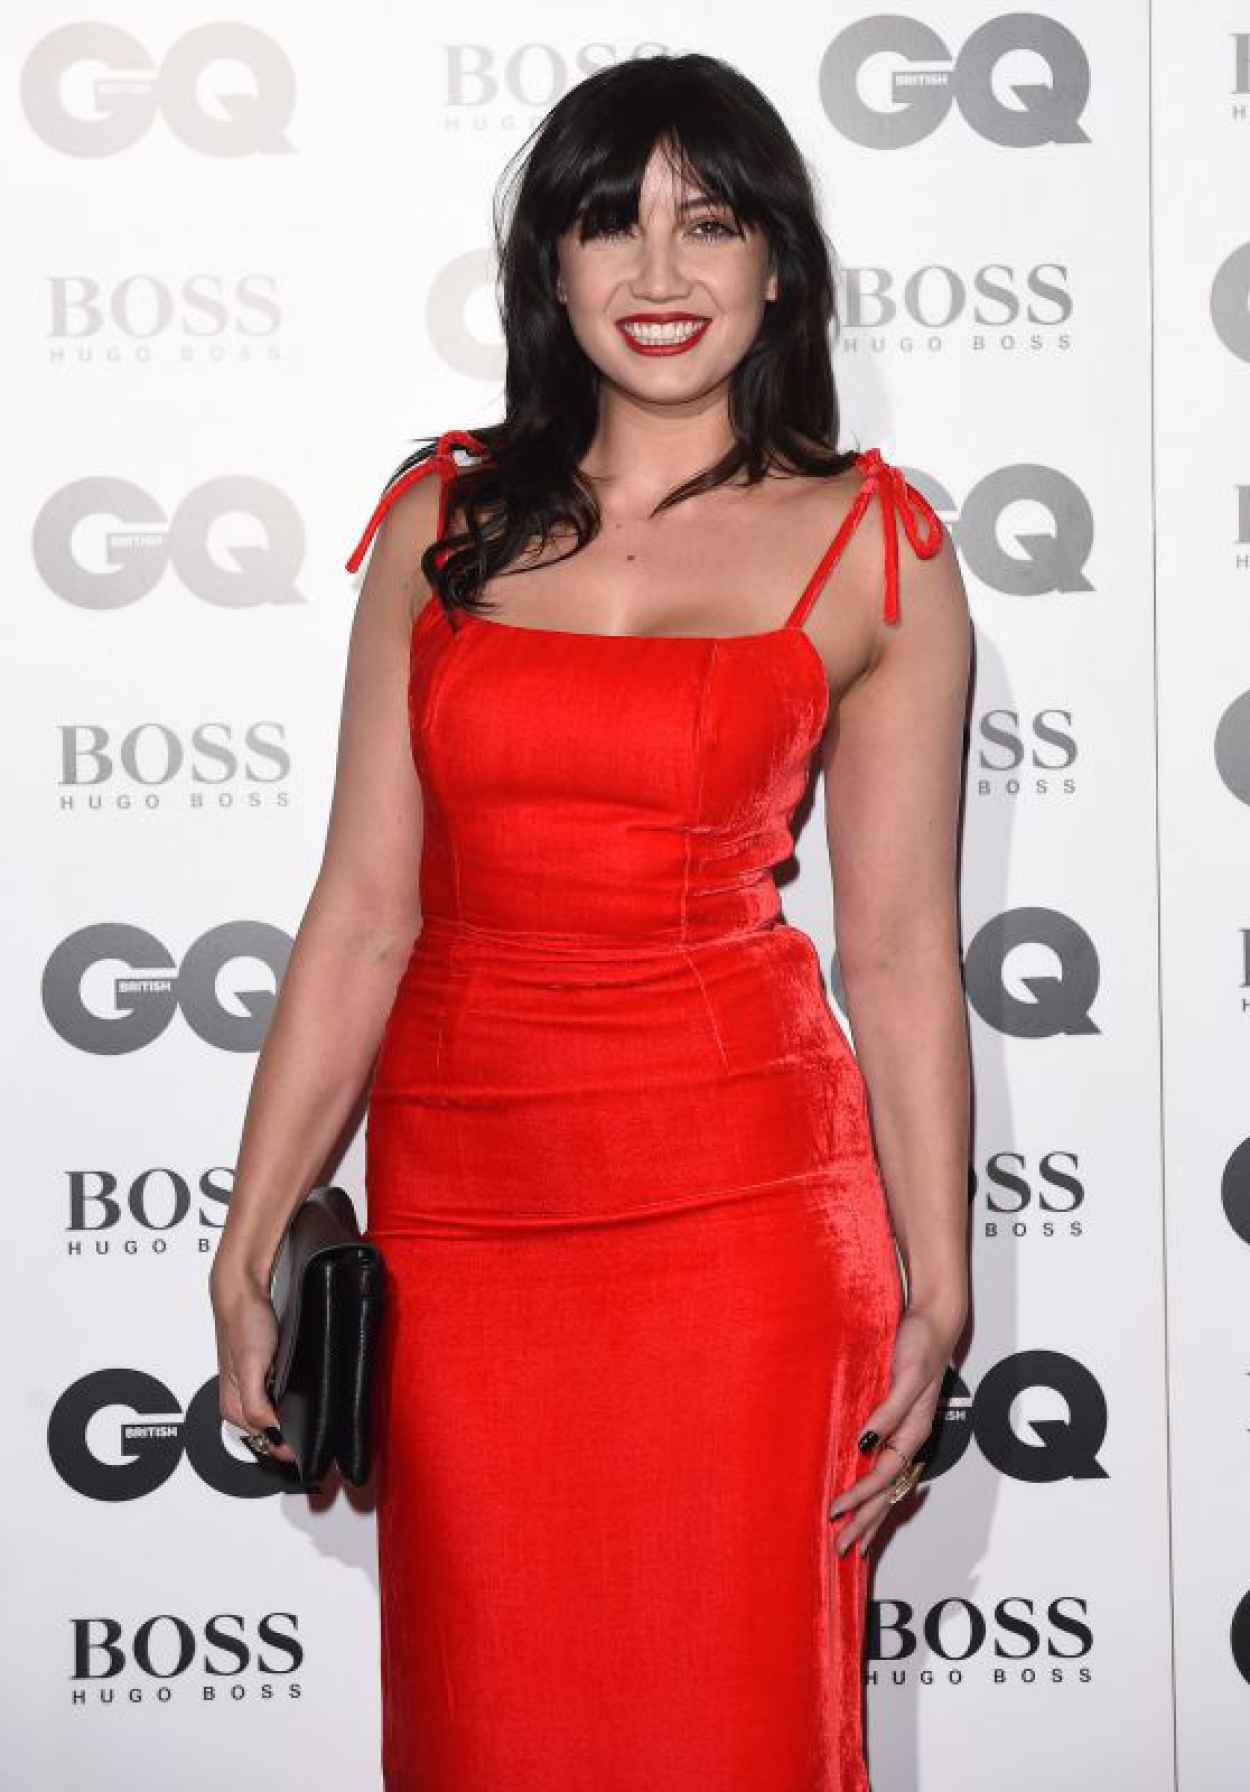 daisy single guys I've been seeing men that either remind me of my mother or remind me of my daisy may be unsure about dating happy birthday to daisy lowe from british gq.